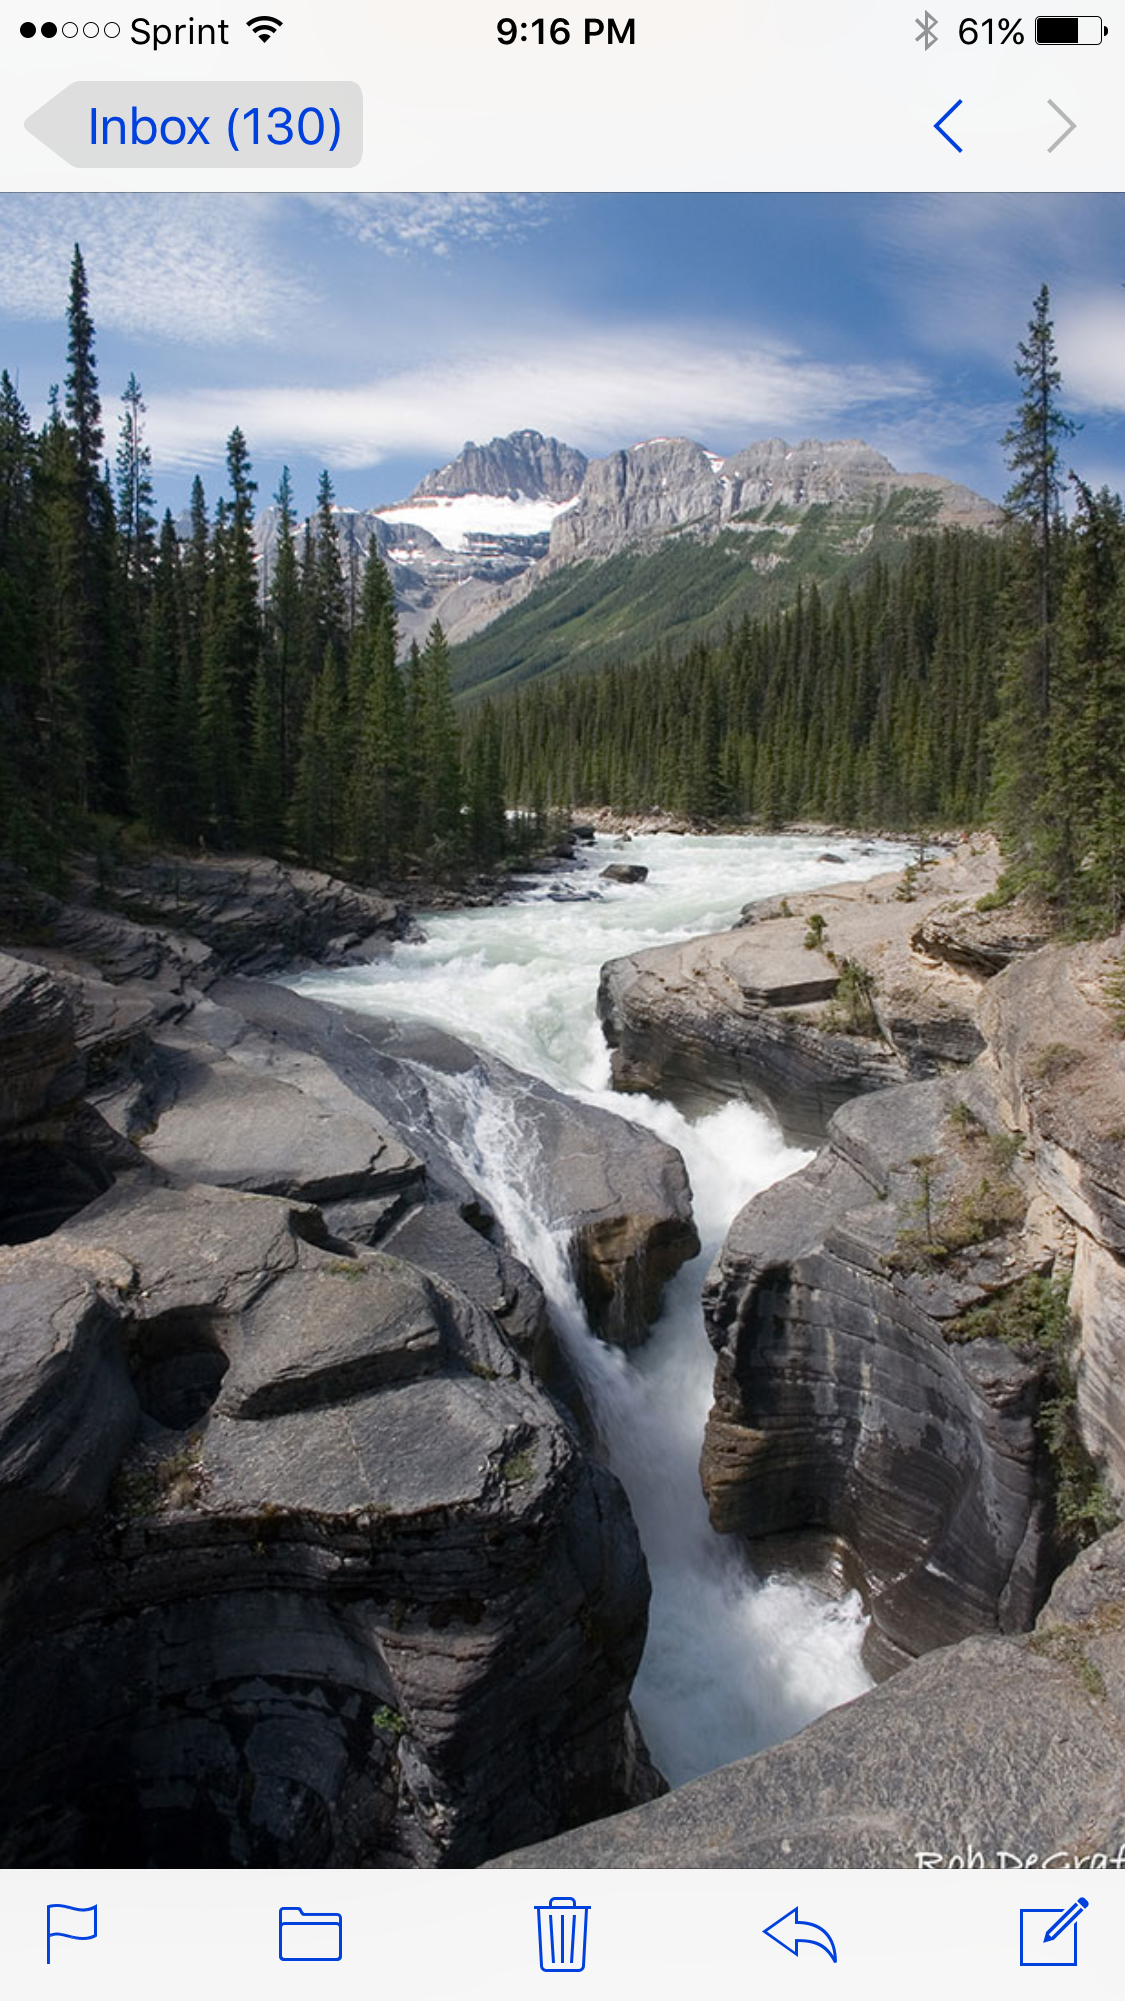 Pin By Tracey Archer On Travel And Leisure Banff National Park Travel And Leisure Whistler Vancouver